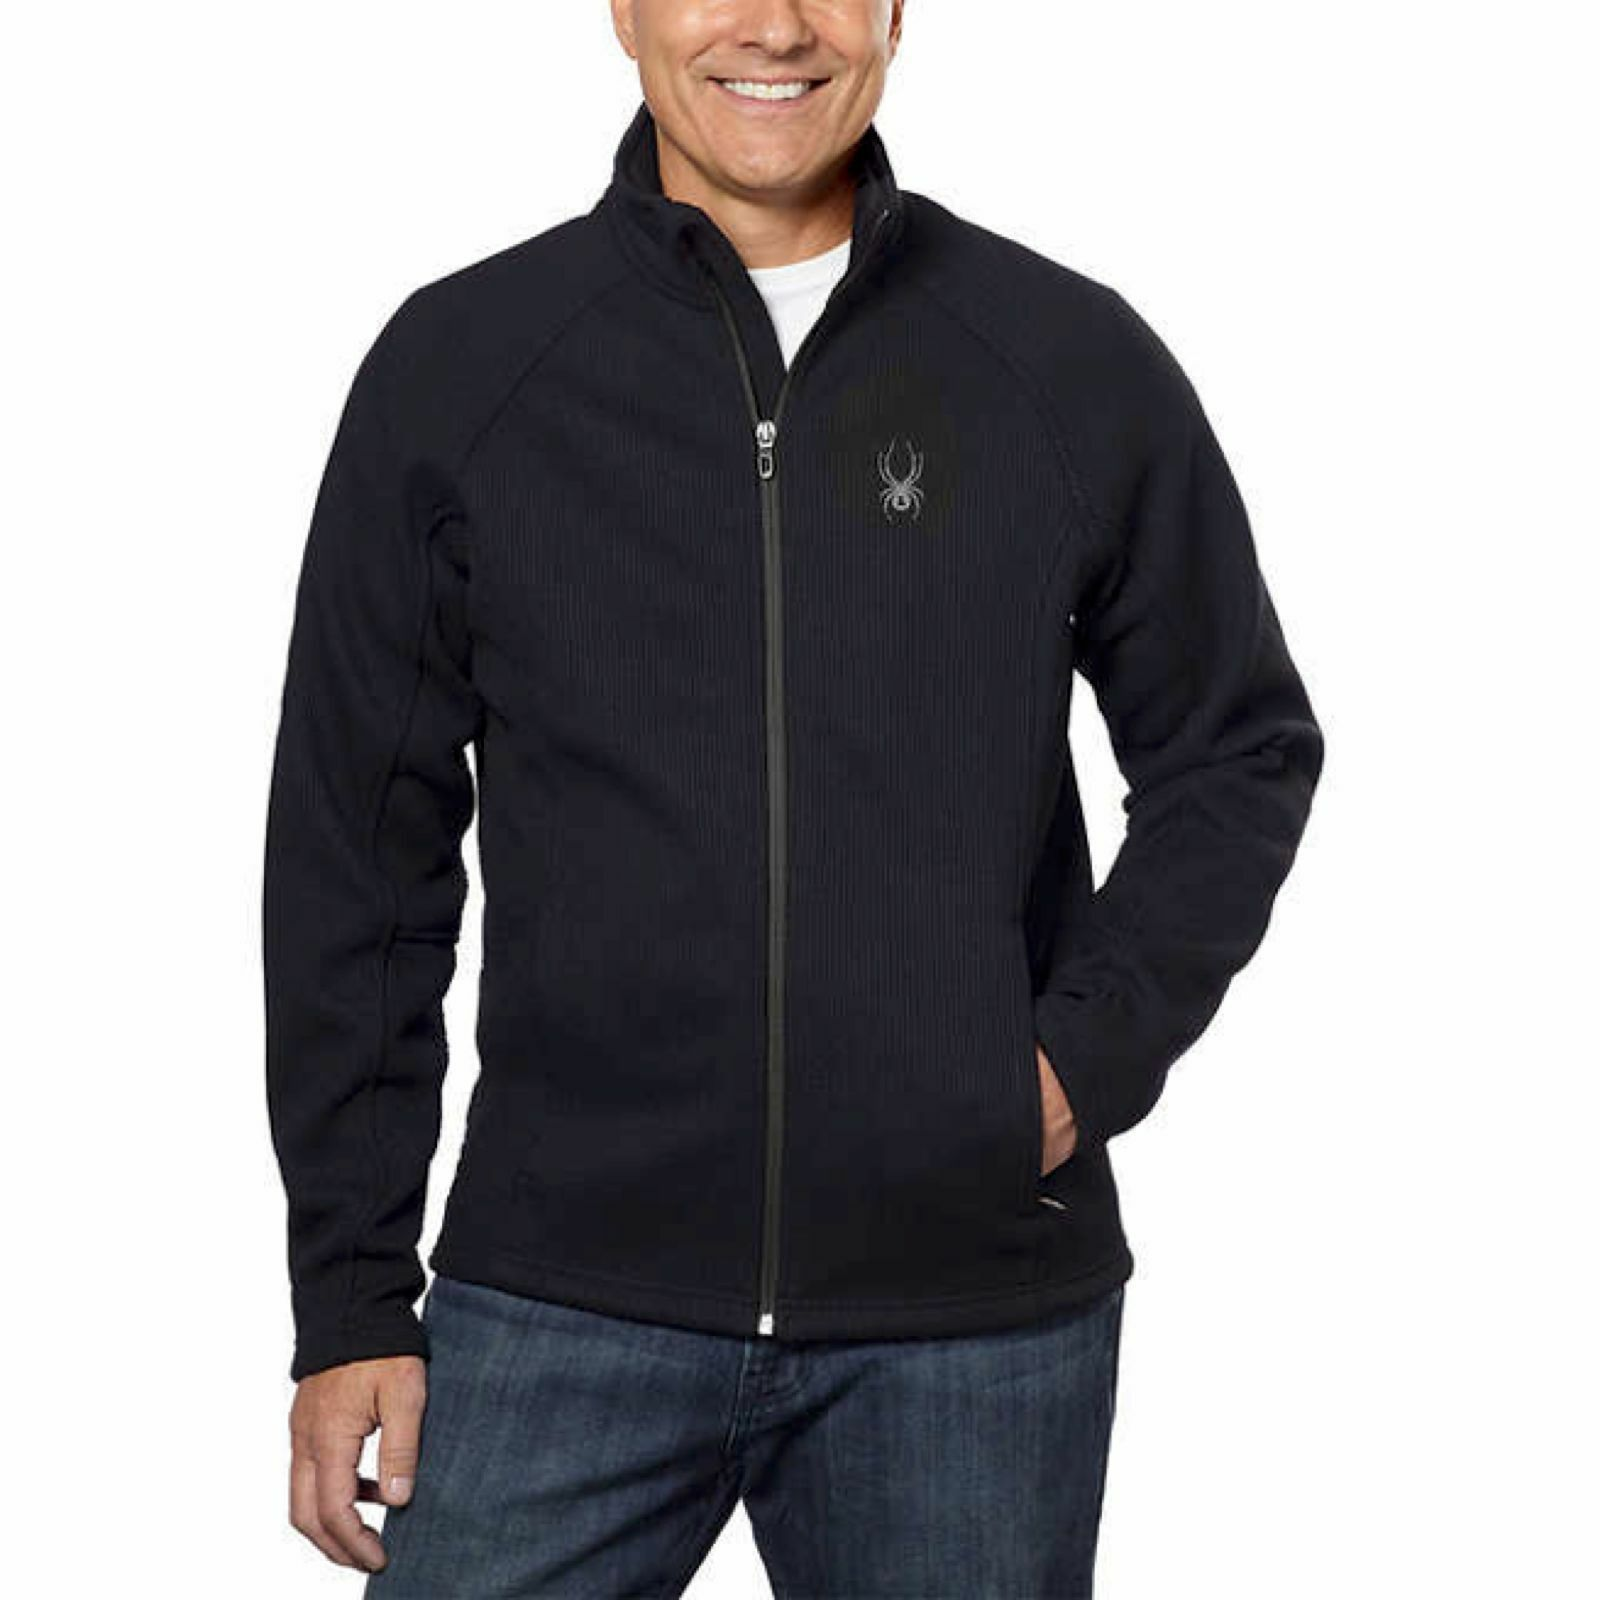 NWT Mens Spyder Foremost Full Zip Heavy weight core sweater  Size Small